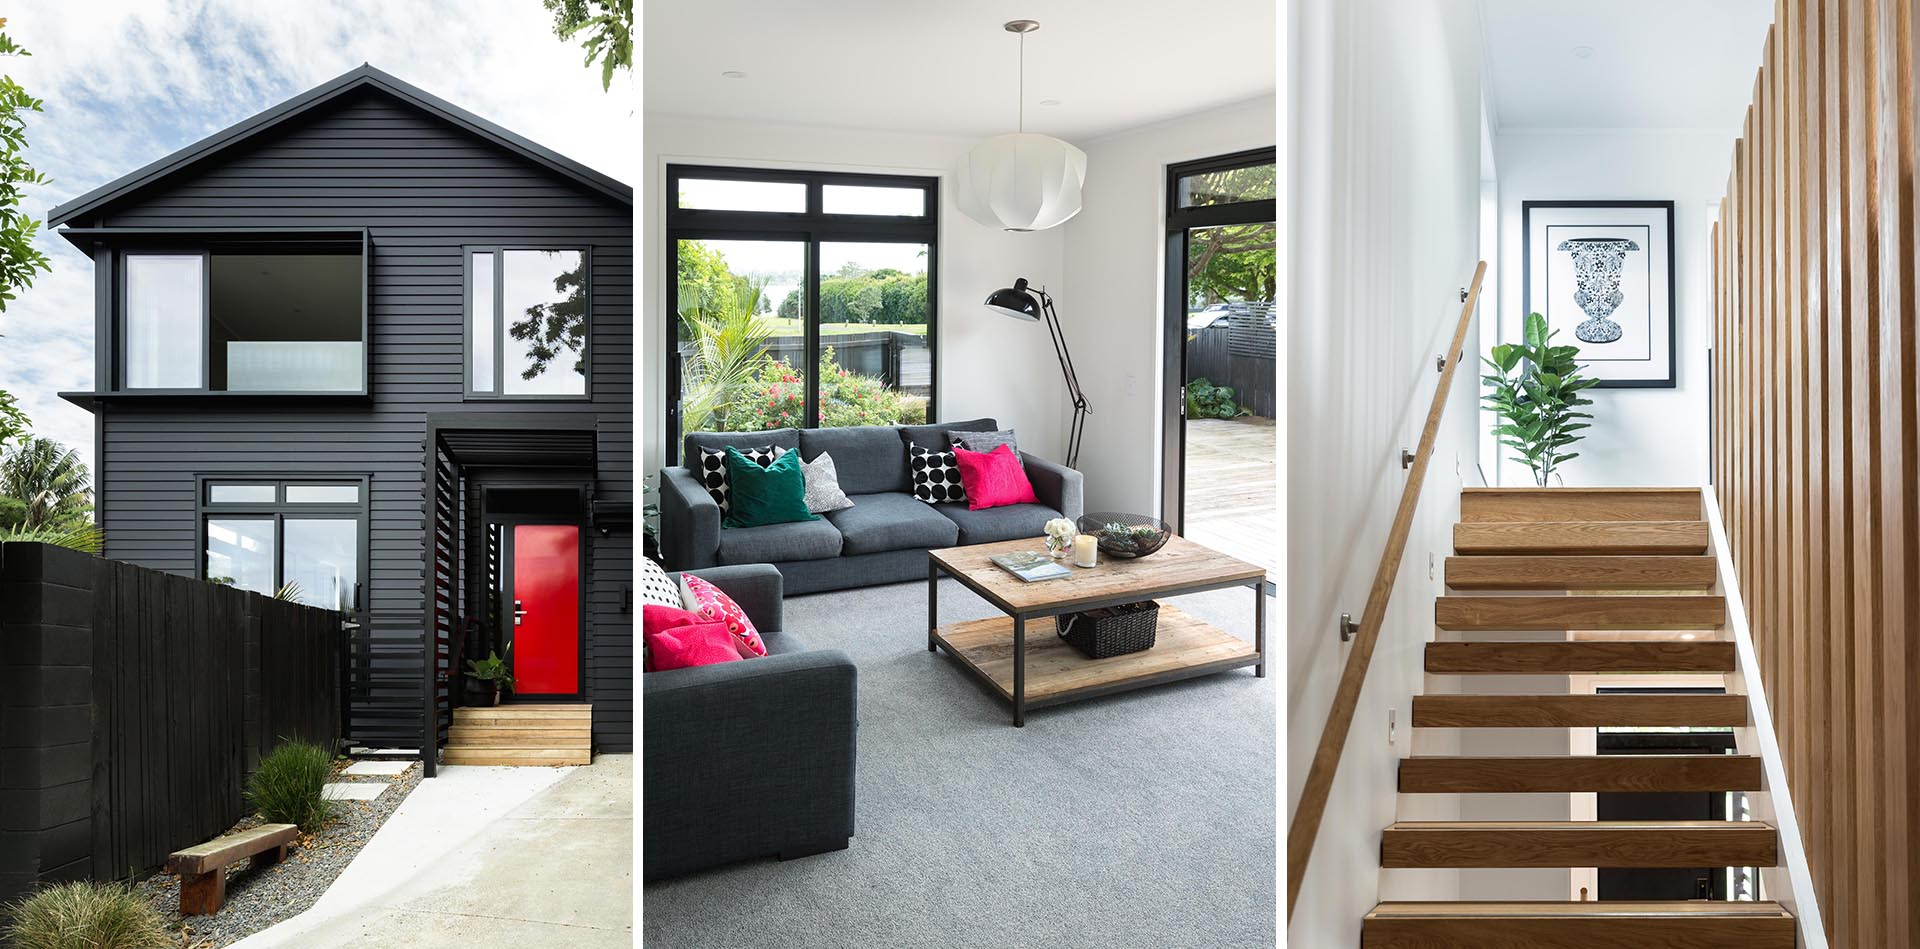 A modern house with a black exterior, bold red front door, and a bright interior with oak staircase.